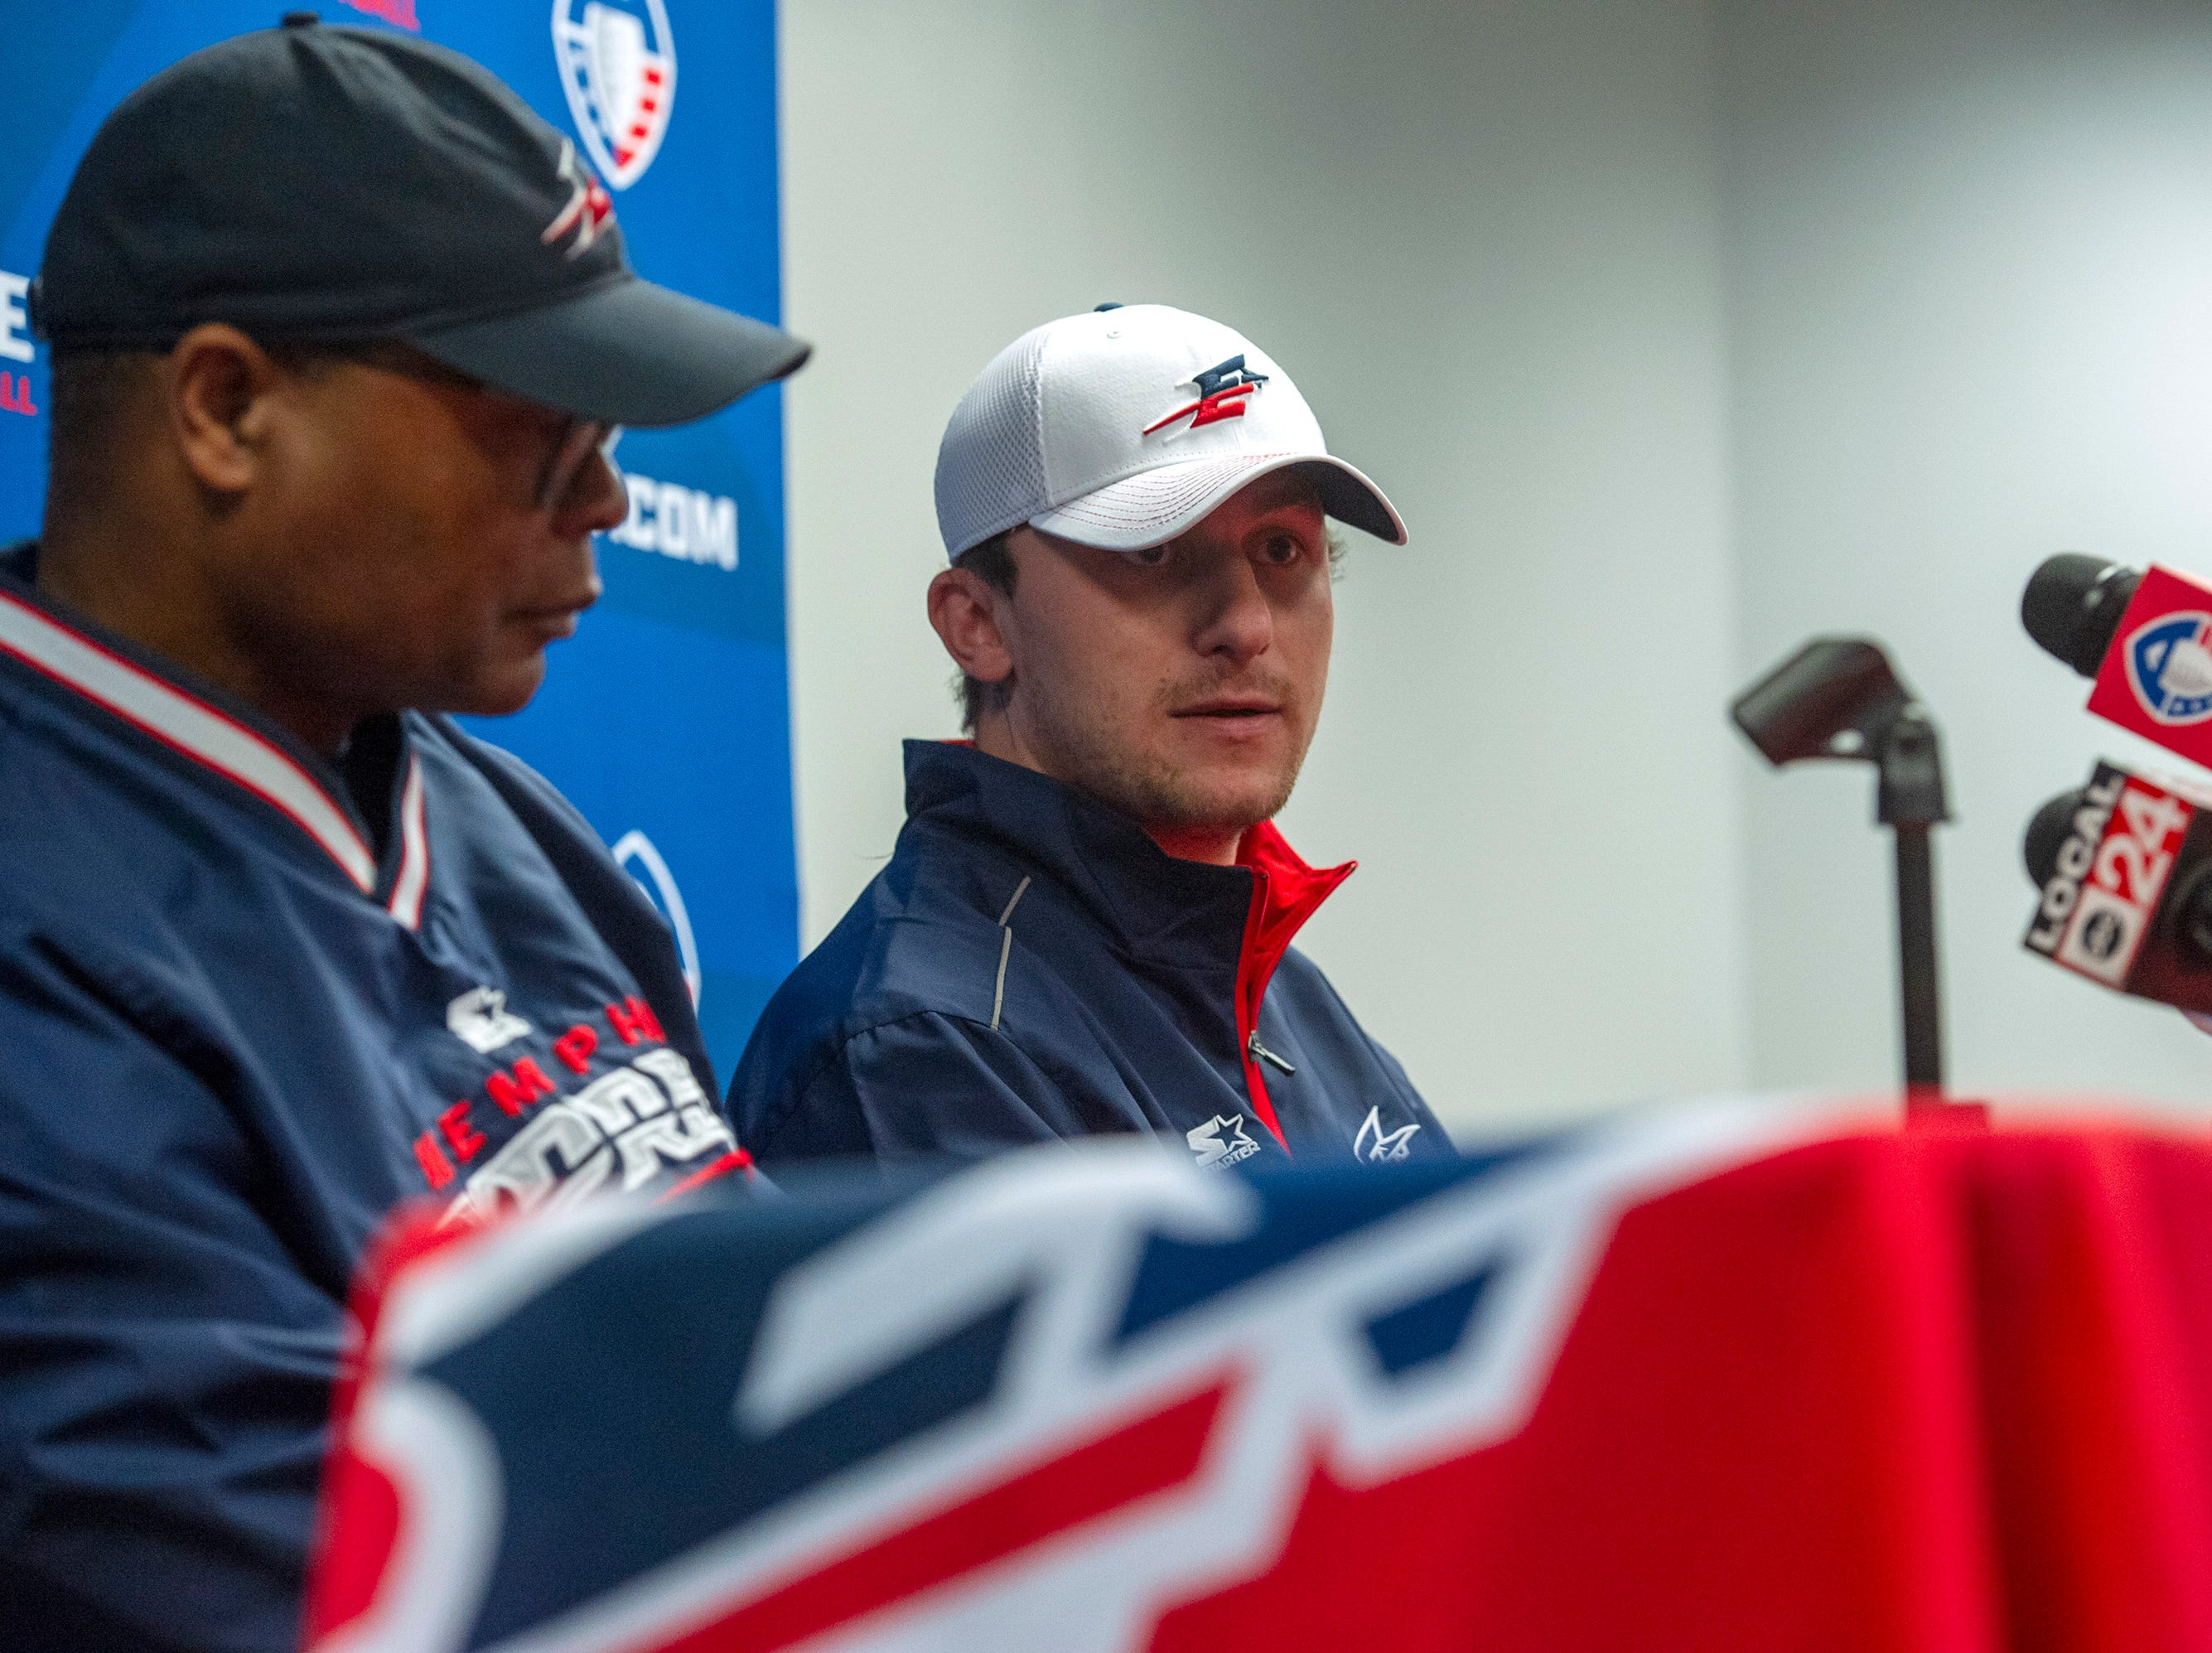 Memphis Express quarterback Johnny Manziel, right, and head coach Mike Singletary speak to media during a press conference March 19, 2019, at Liberty Bowl Memorial Stadium.